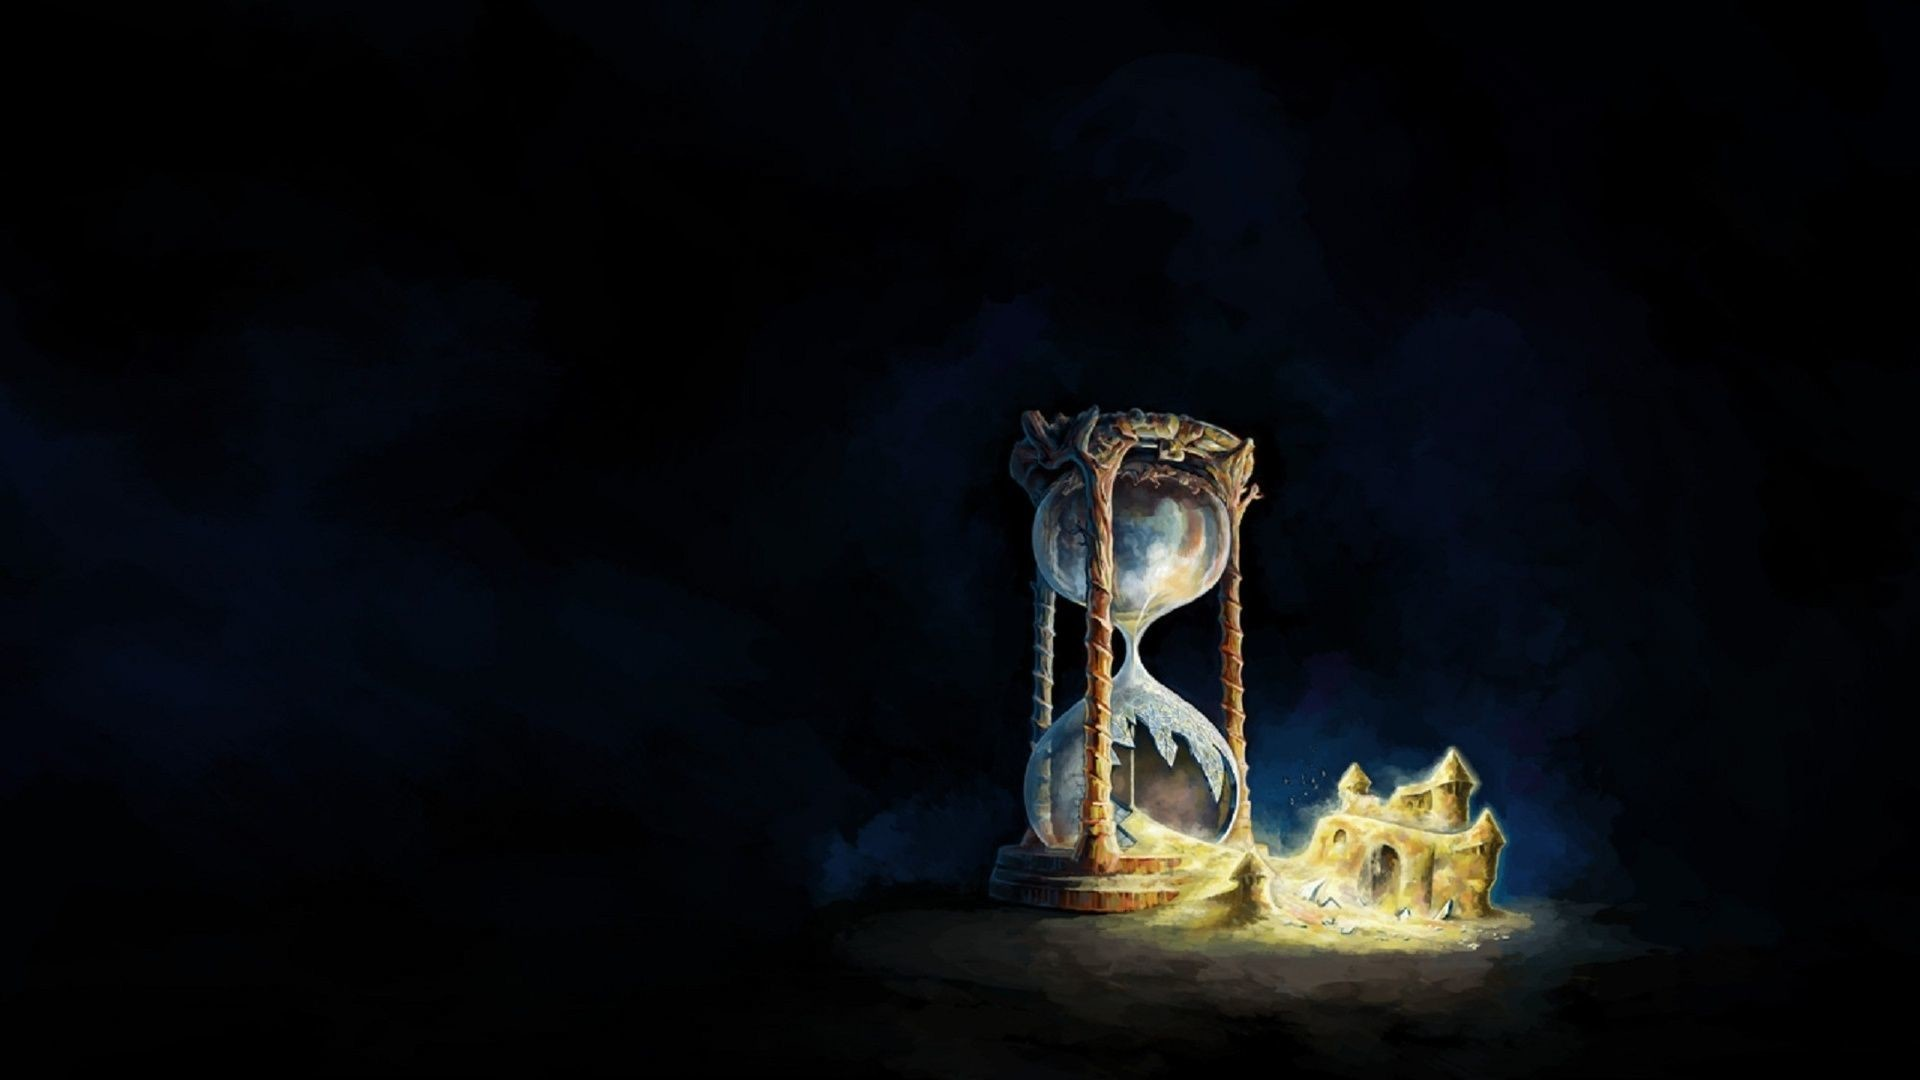 Res: 1920x1080, Beautiful Hourglass Wallpapers High Resolution